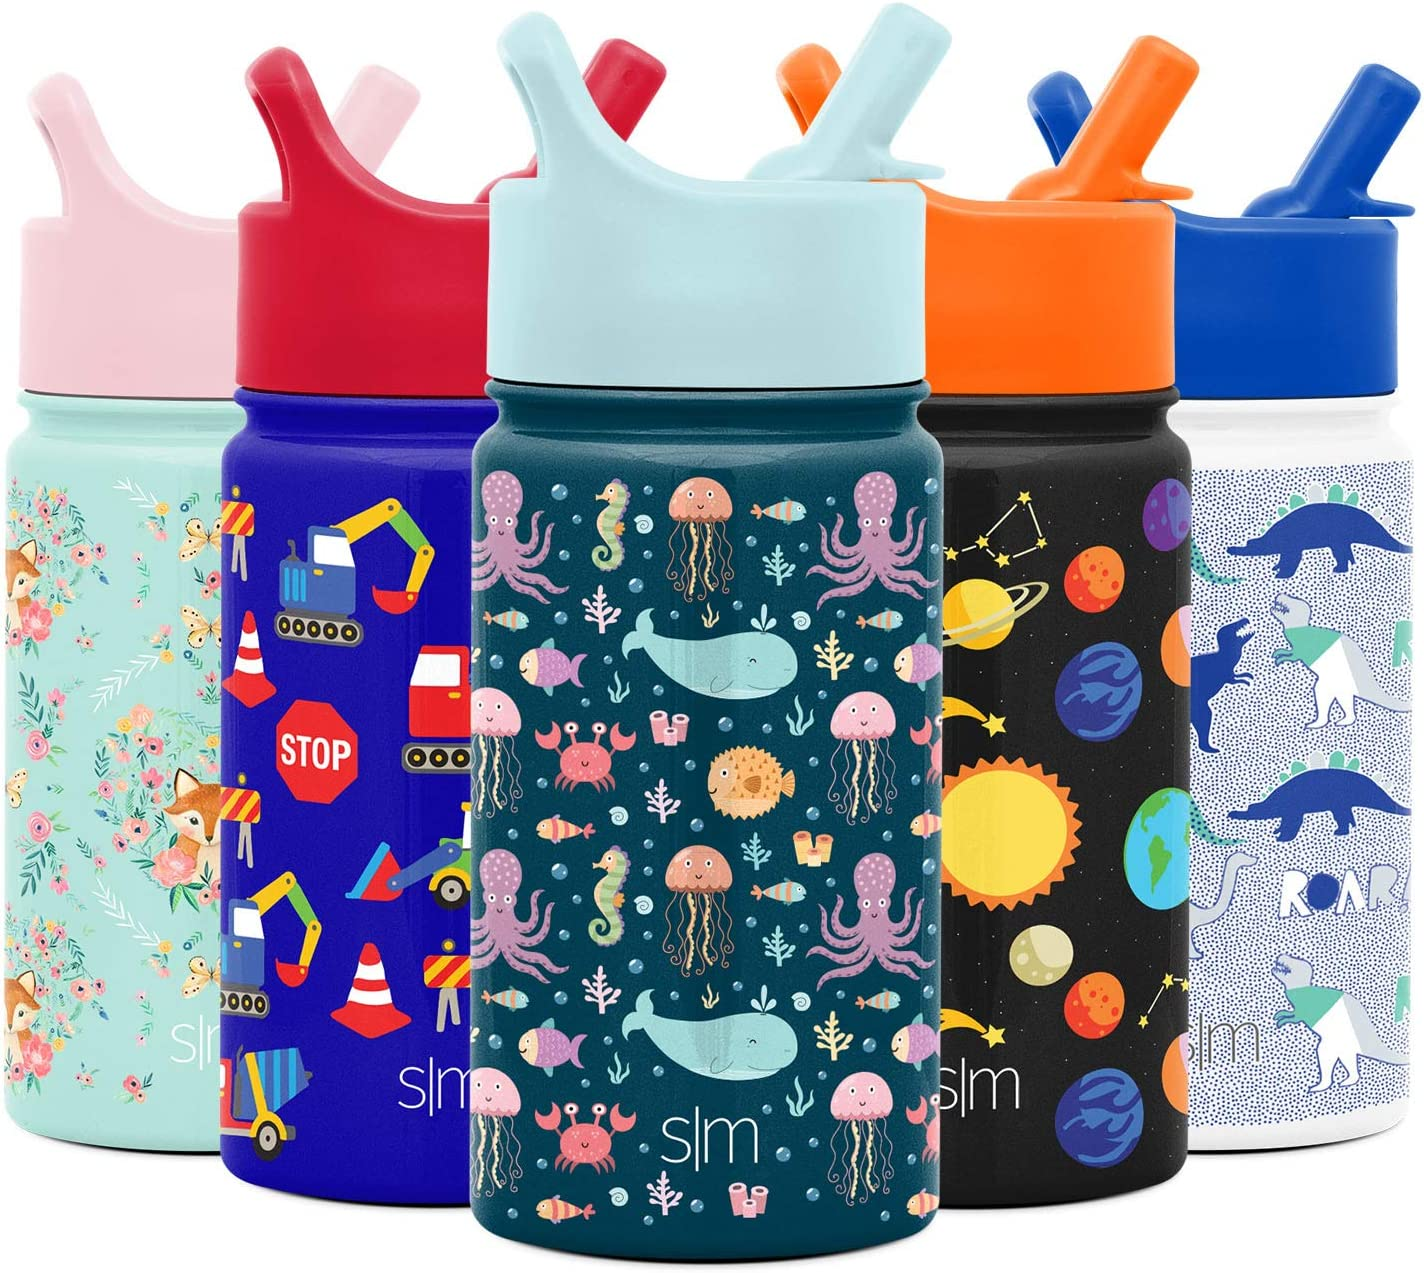 Simple Modern 14oz Summit Kids Water Bottle Thermos with Straw Lid - Dishwasher Safe Vacuum Insulated Double Wall Tumbler Travel Cup 18/8 Stainless Steel - Under the Sea